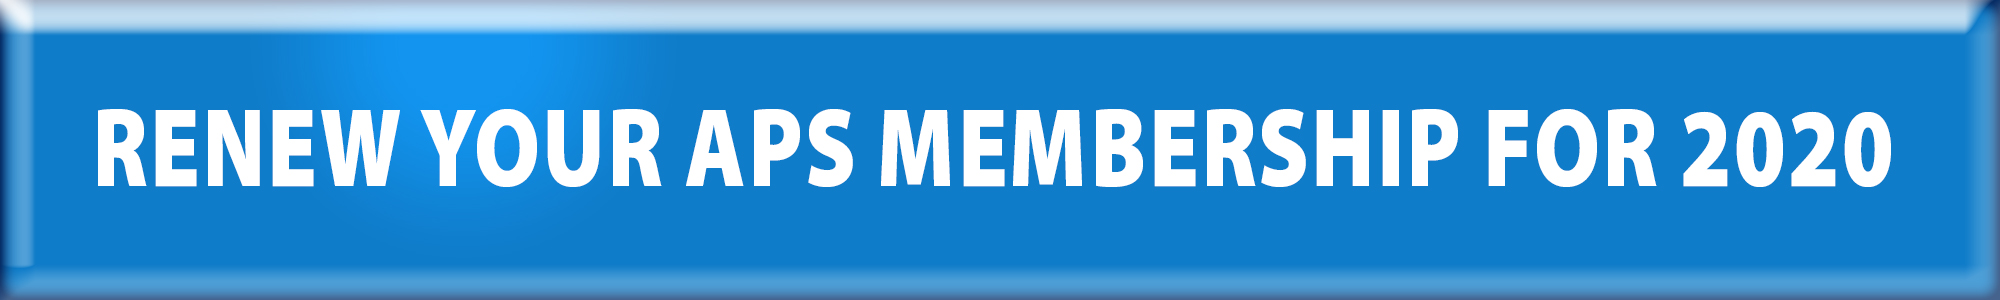 Renew your APS membership